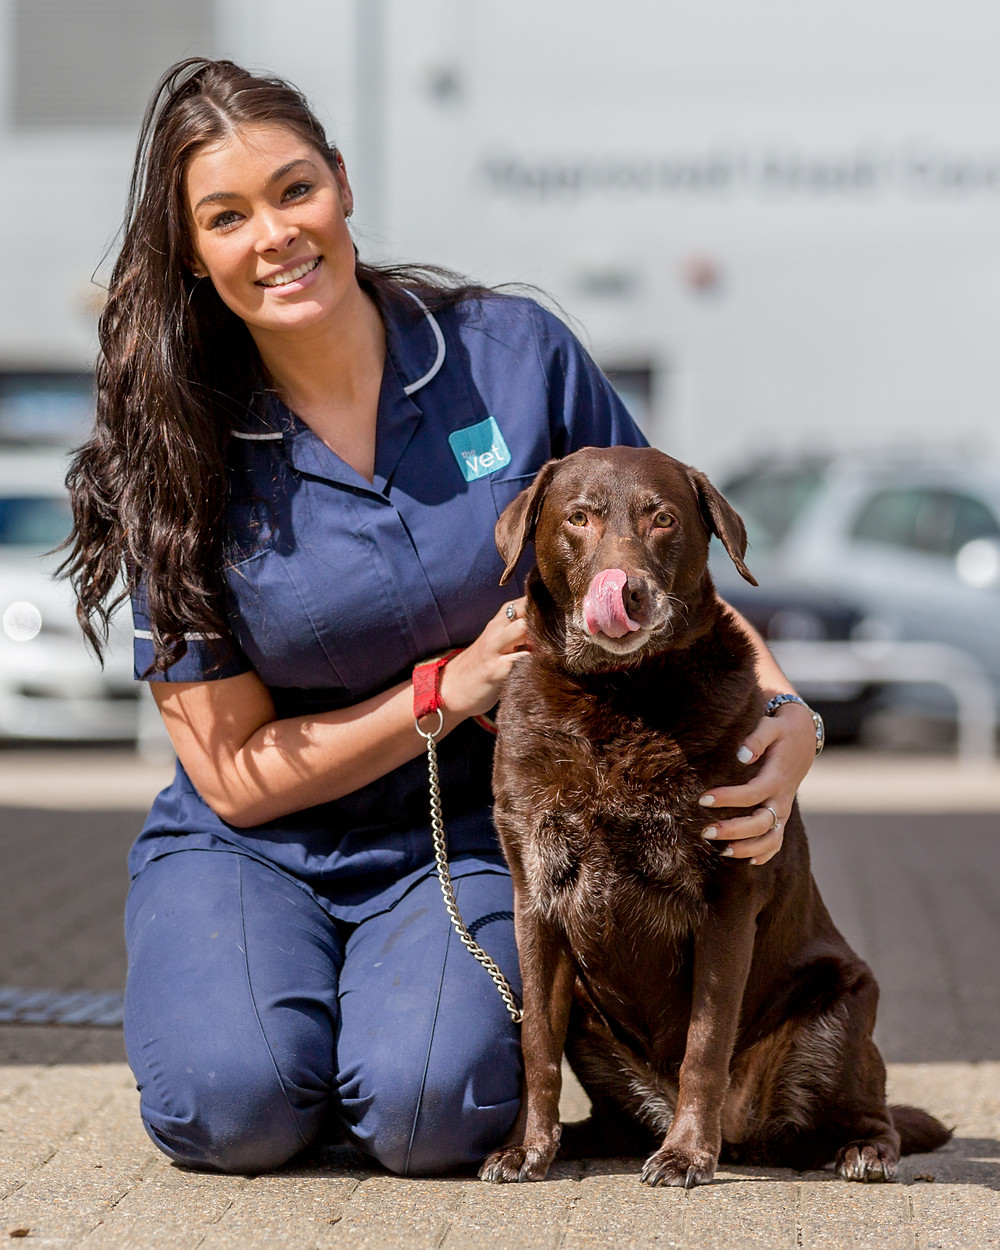 Pet photography in London. Ashleigh and Pudsey at The Vet